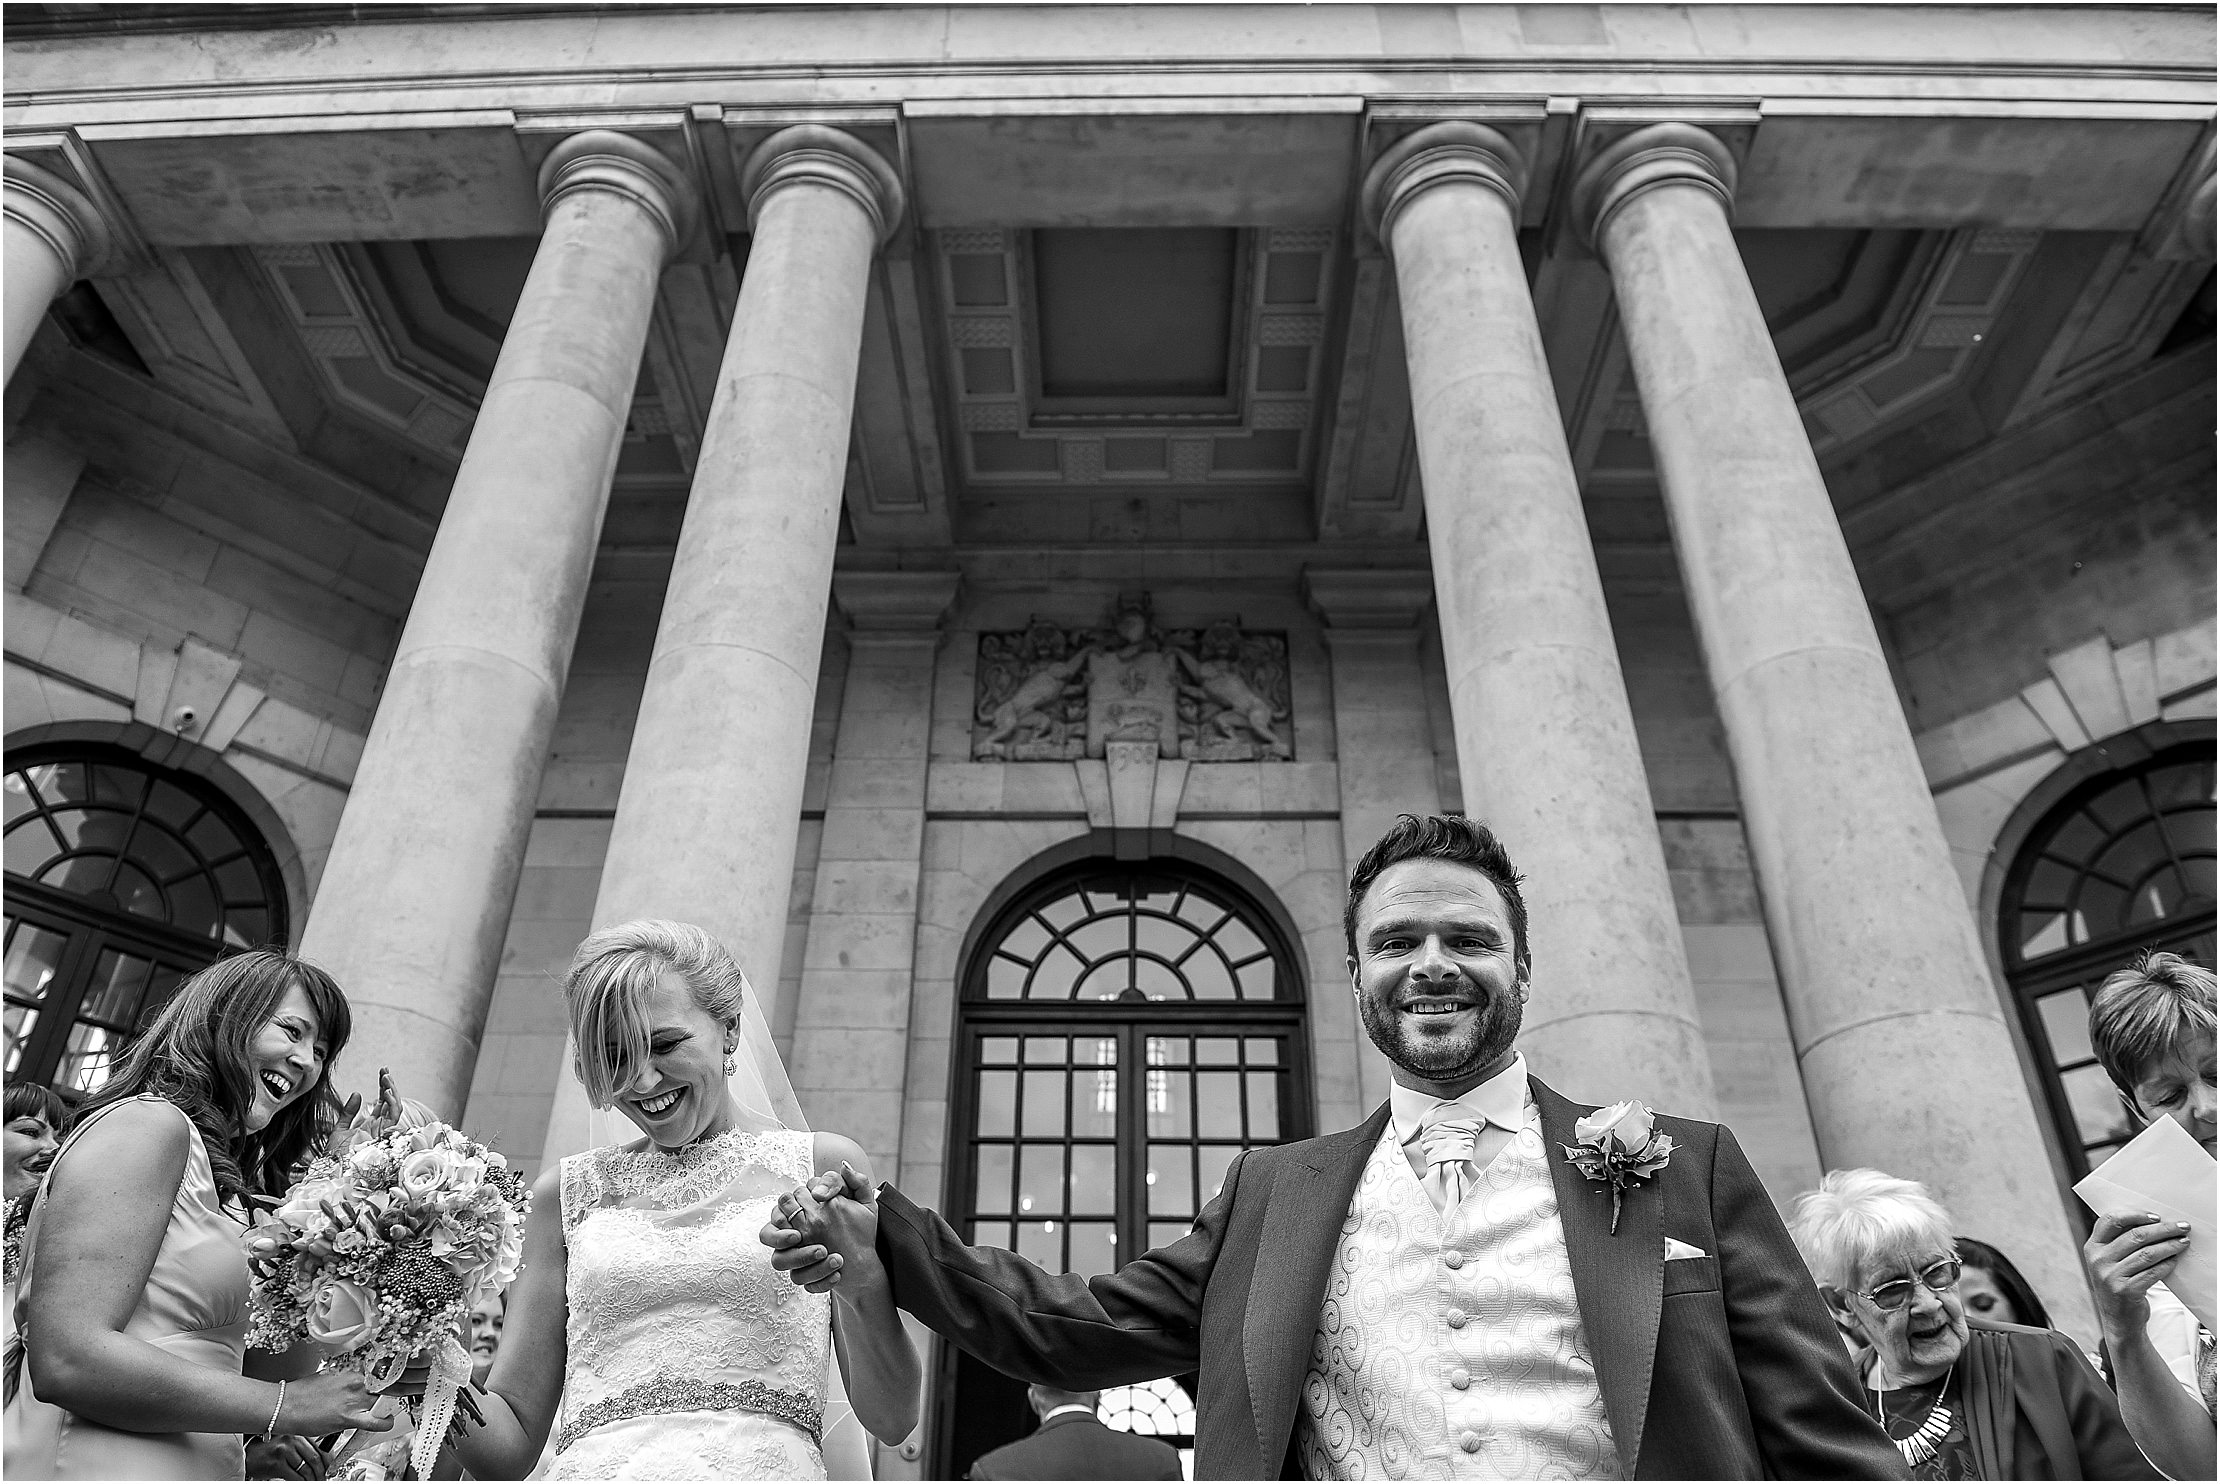 dan-wootton-wedding-photography-2015 - 083.jpg